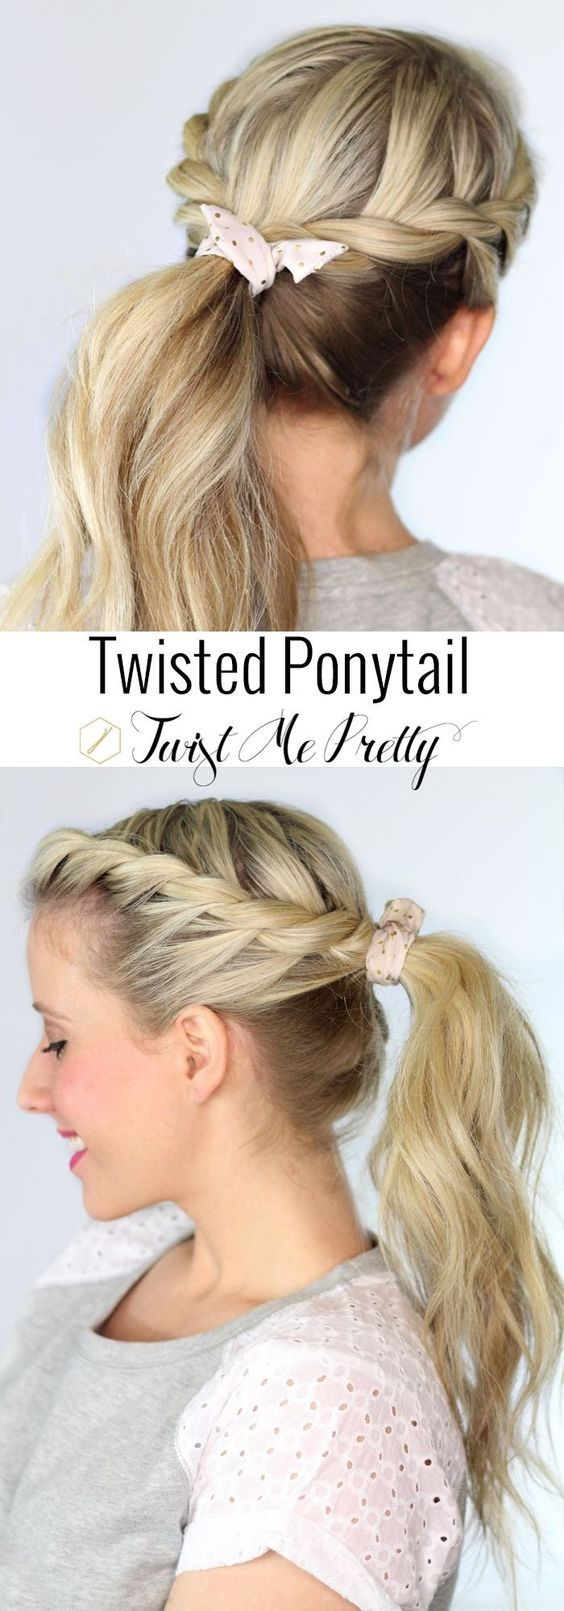 12 cute and easy hairstyles for school 2017 | cute easy hairstyles